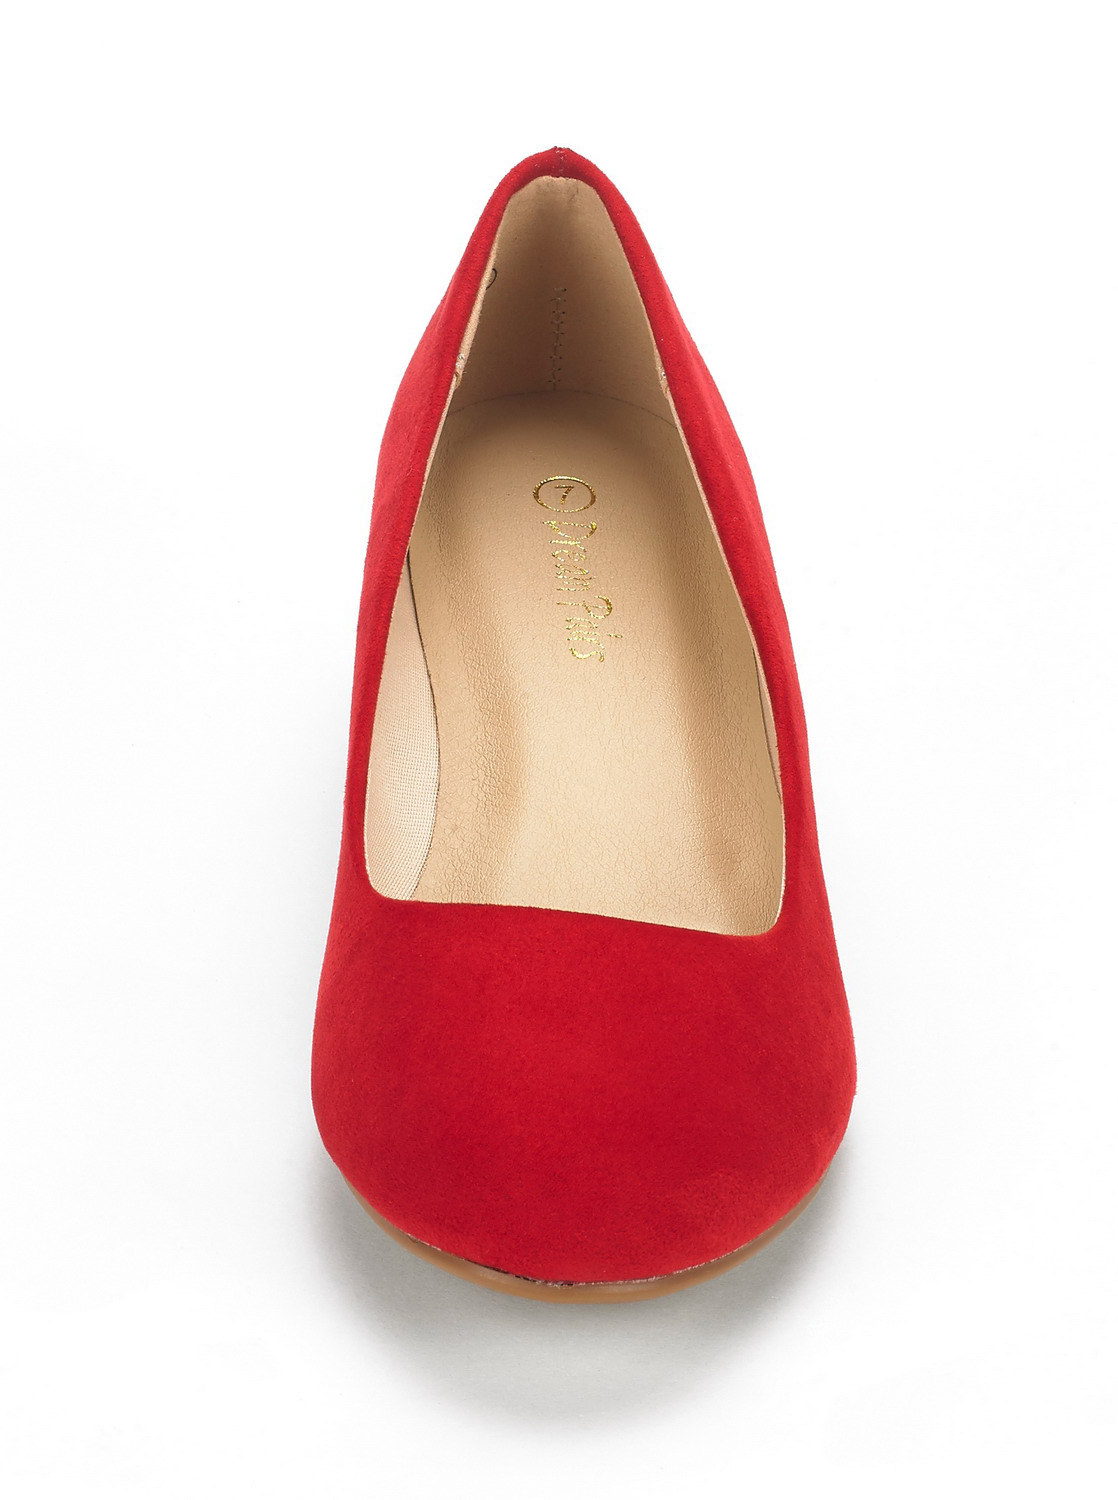 DREAM-PAIRS-Women-039-s-Mid-Wedge-Heel-Shoes-Slip-On-Comfort-Dress-Shoes-Suede-PU thumbnail 34